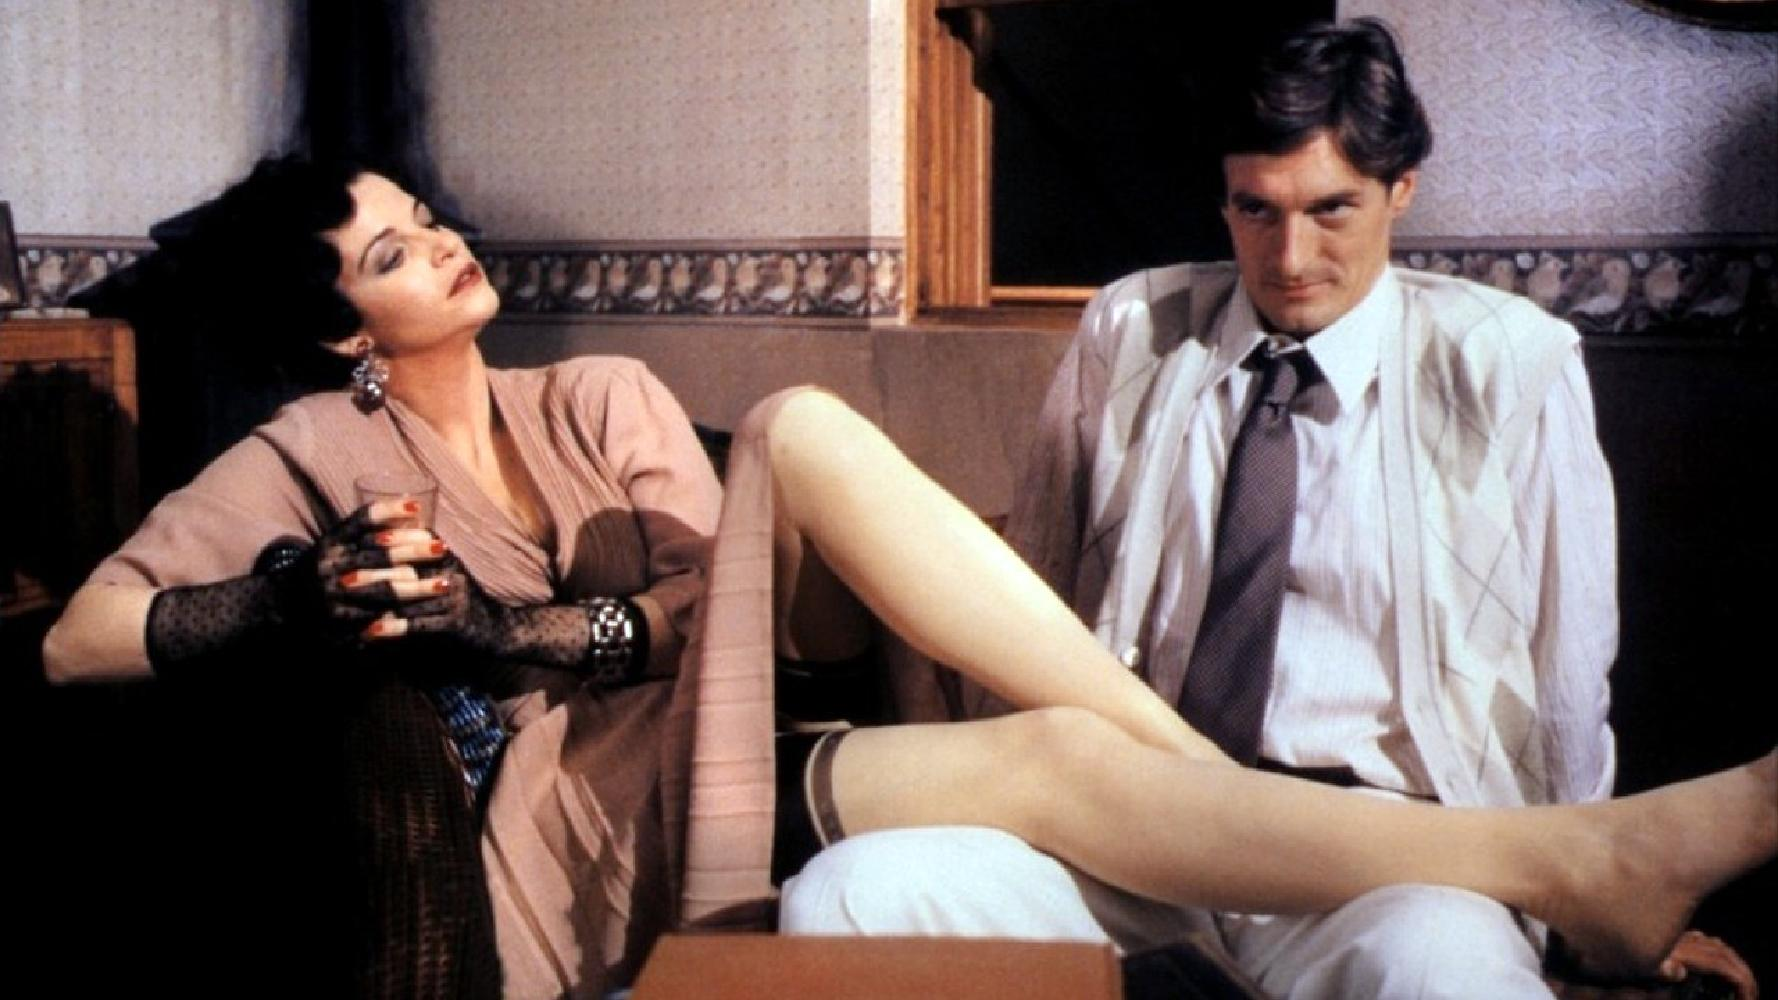 Scent Of A Woman (Sapore Di Donna) - Full Movie By Film&Clips